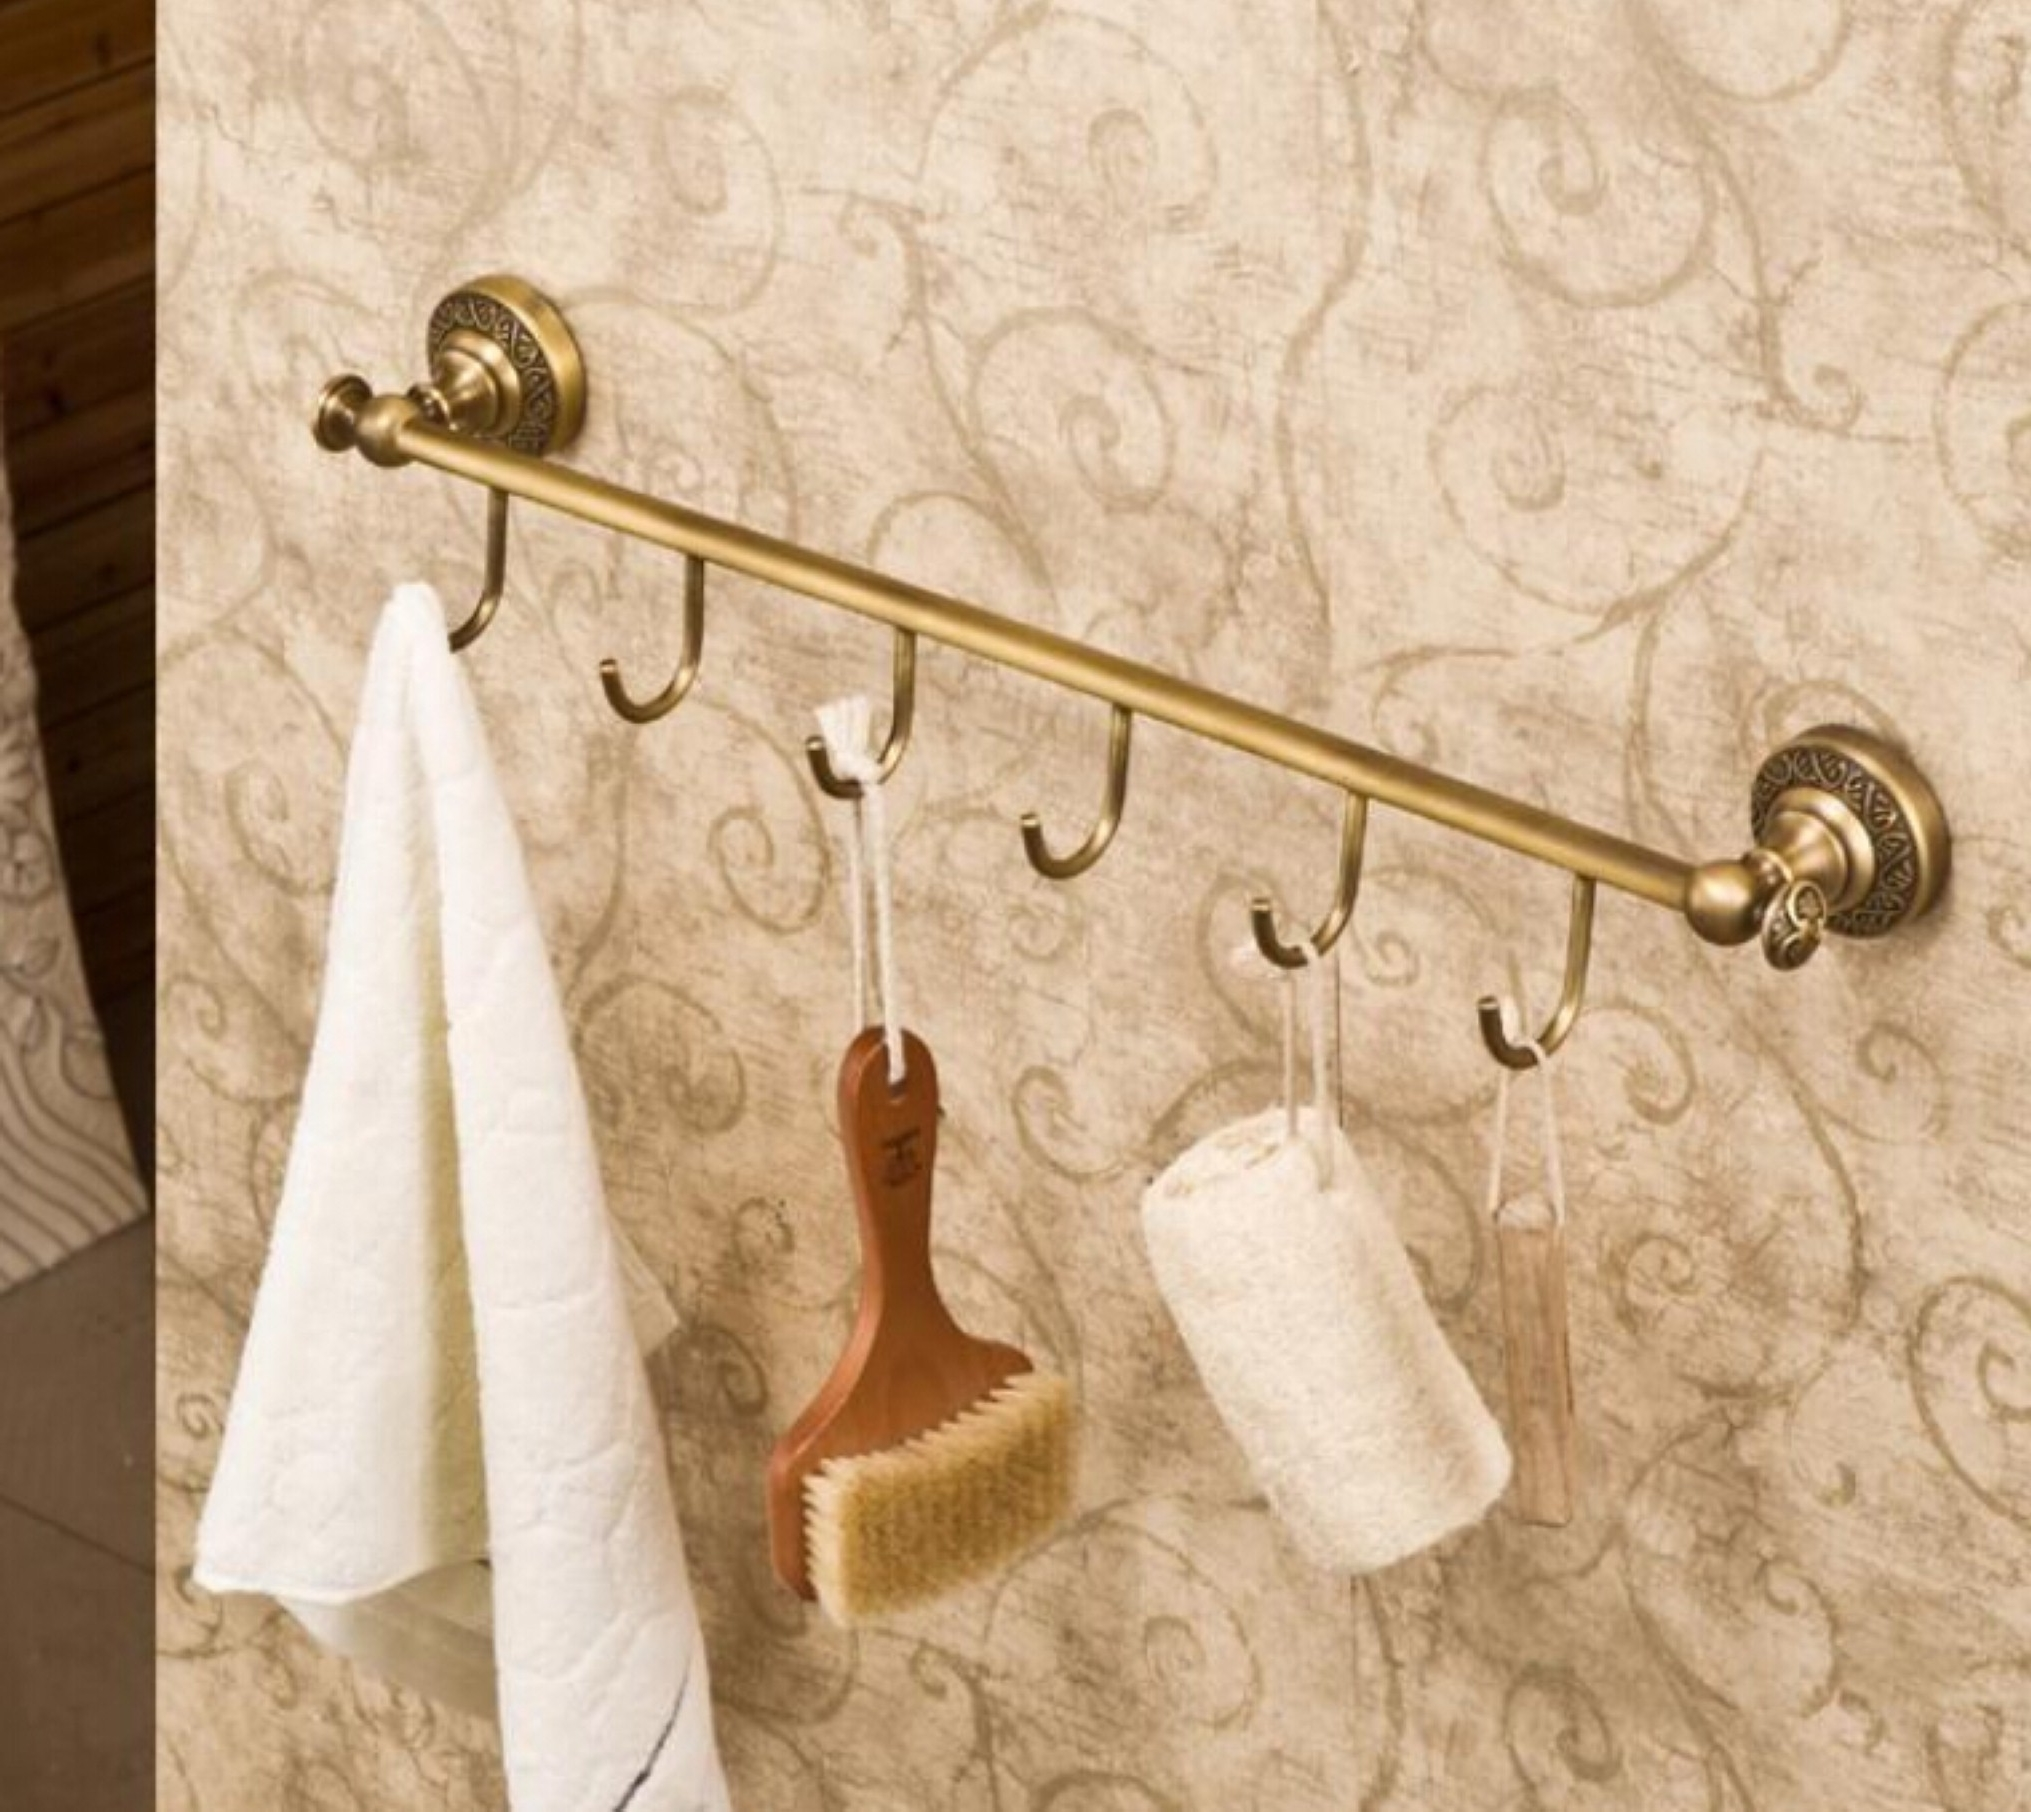 Minimalist Furniture Decorating Adorable Gold Coat Hanger Design For Bathroom With Brown Wall And White Towel Together With Brown Brush Innovative And Unique Coat Hanger Designs (Image 16 of 25)